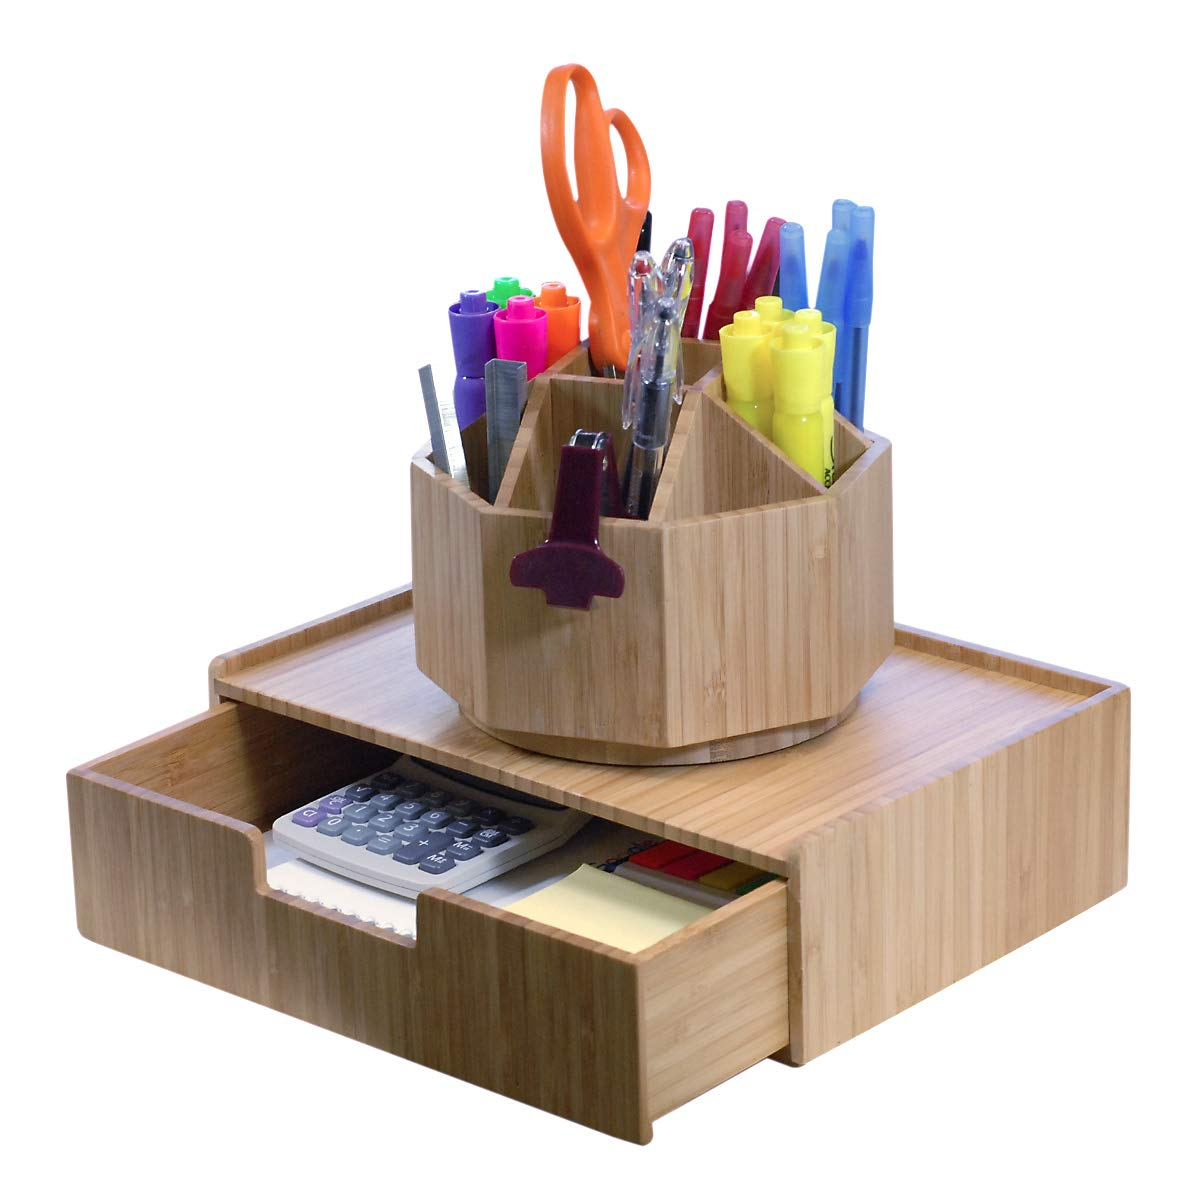 Bamboo Rotating Office & Art Supply Organizer, 9 Sections, Plus Drawer Combo for Pens, Pencils, Highlighters, Markers, Scissors, Accessories & More